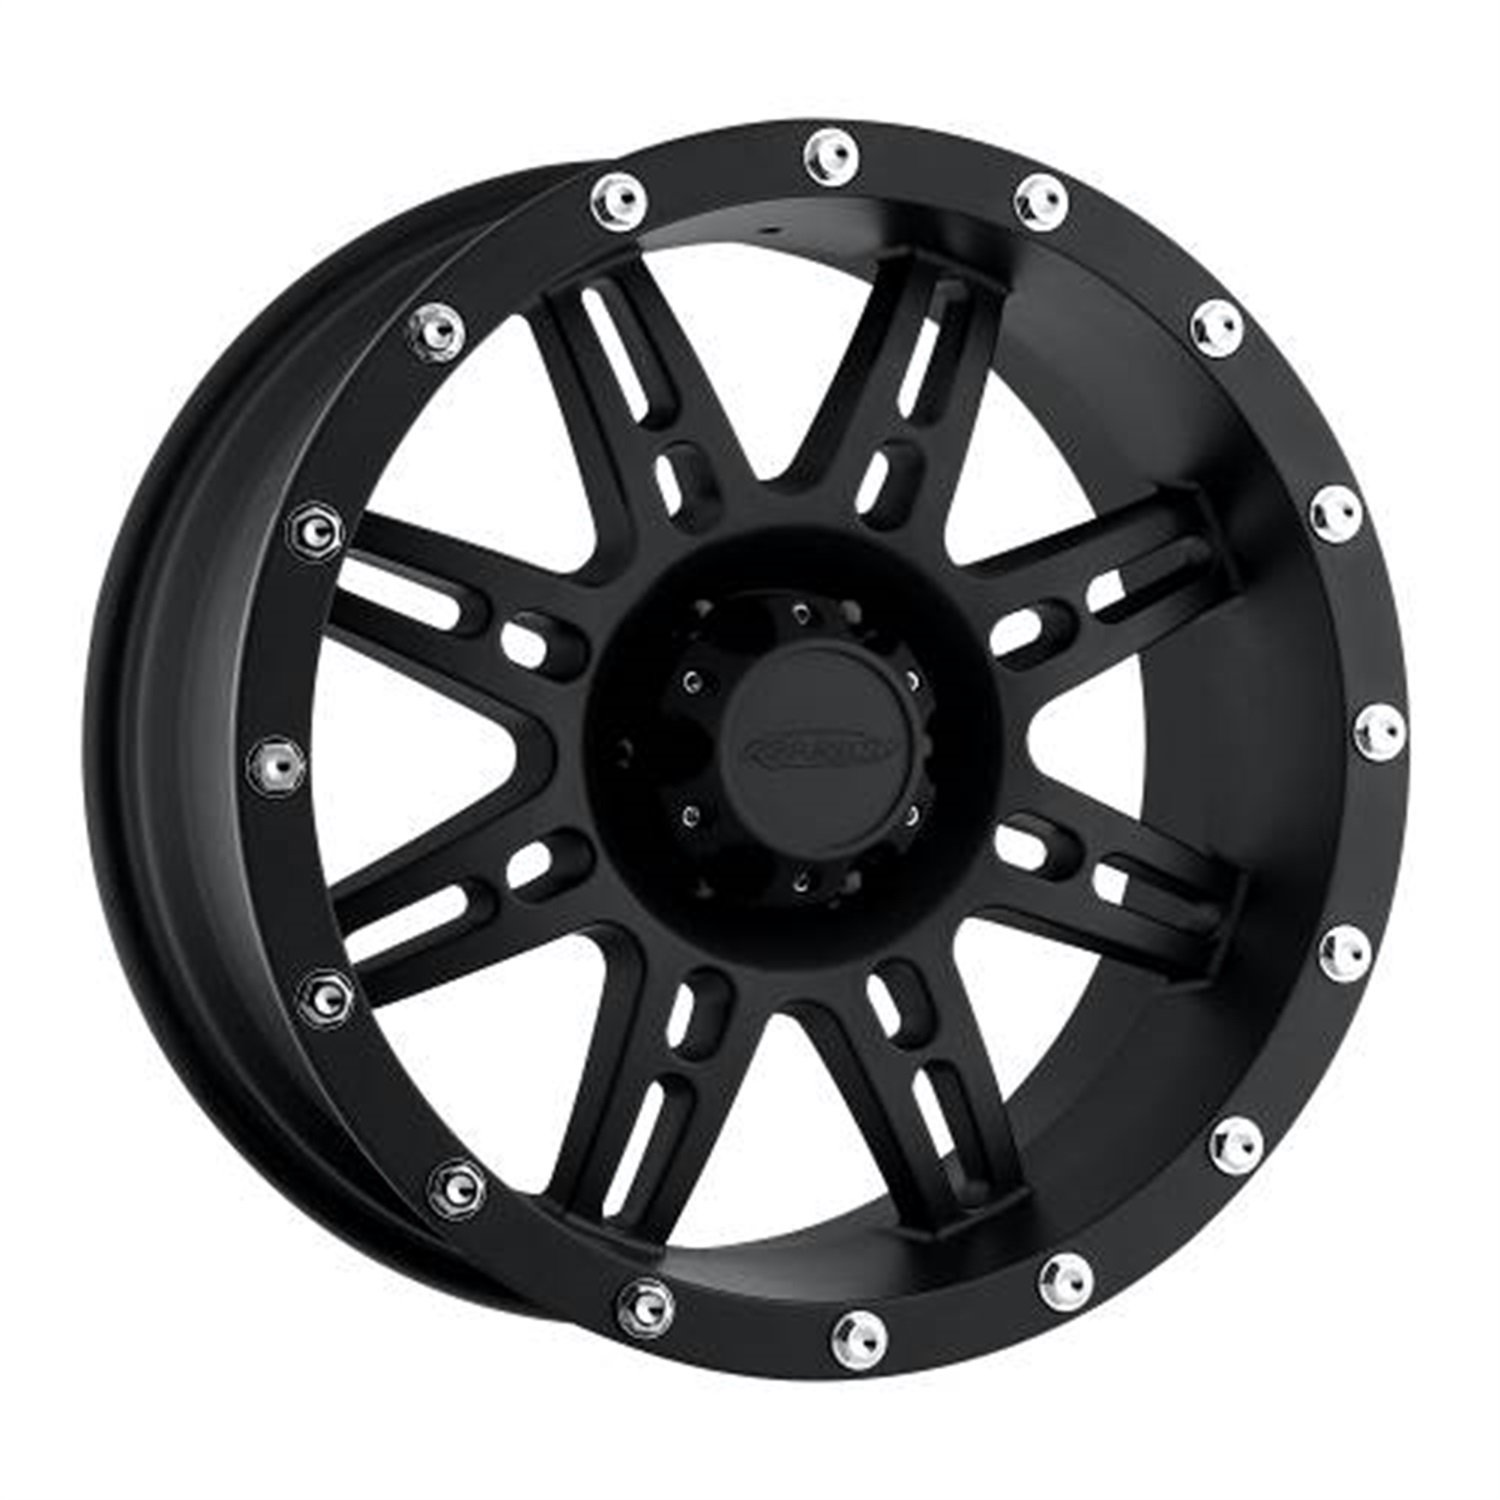 Pro Comp Alloys Series 31 Wheel with Flat Black Finish (17x9'/5x139.7mm) Pro Comp Wheels PXA7031-7985